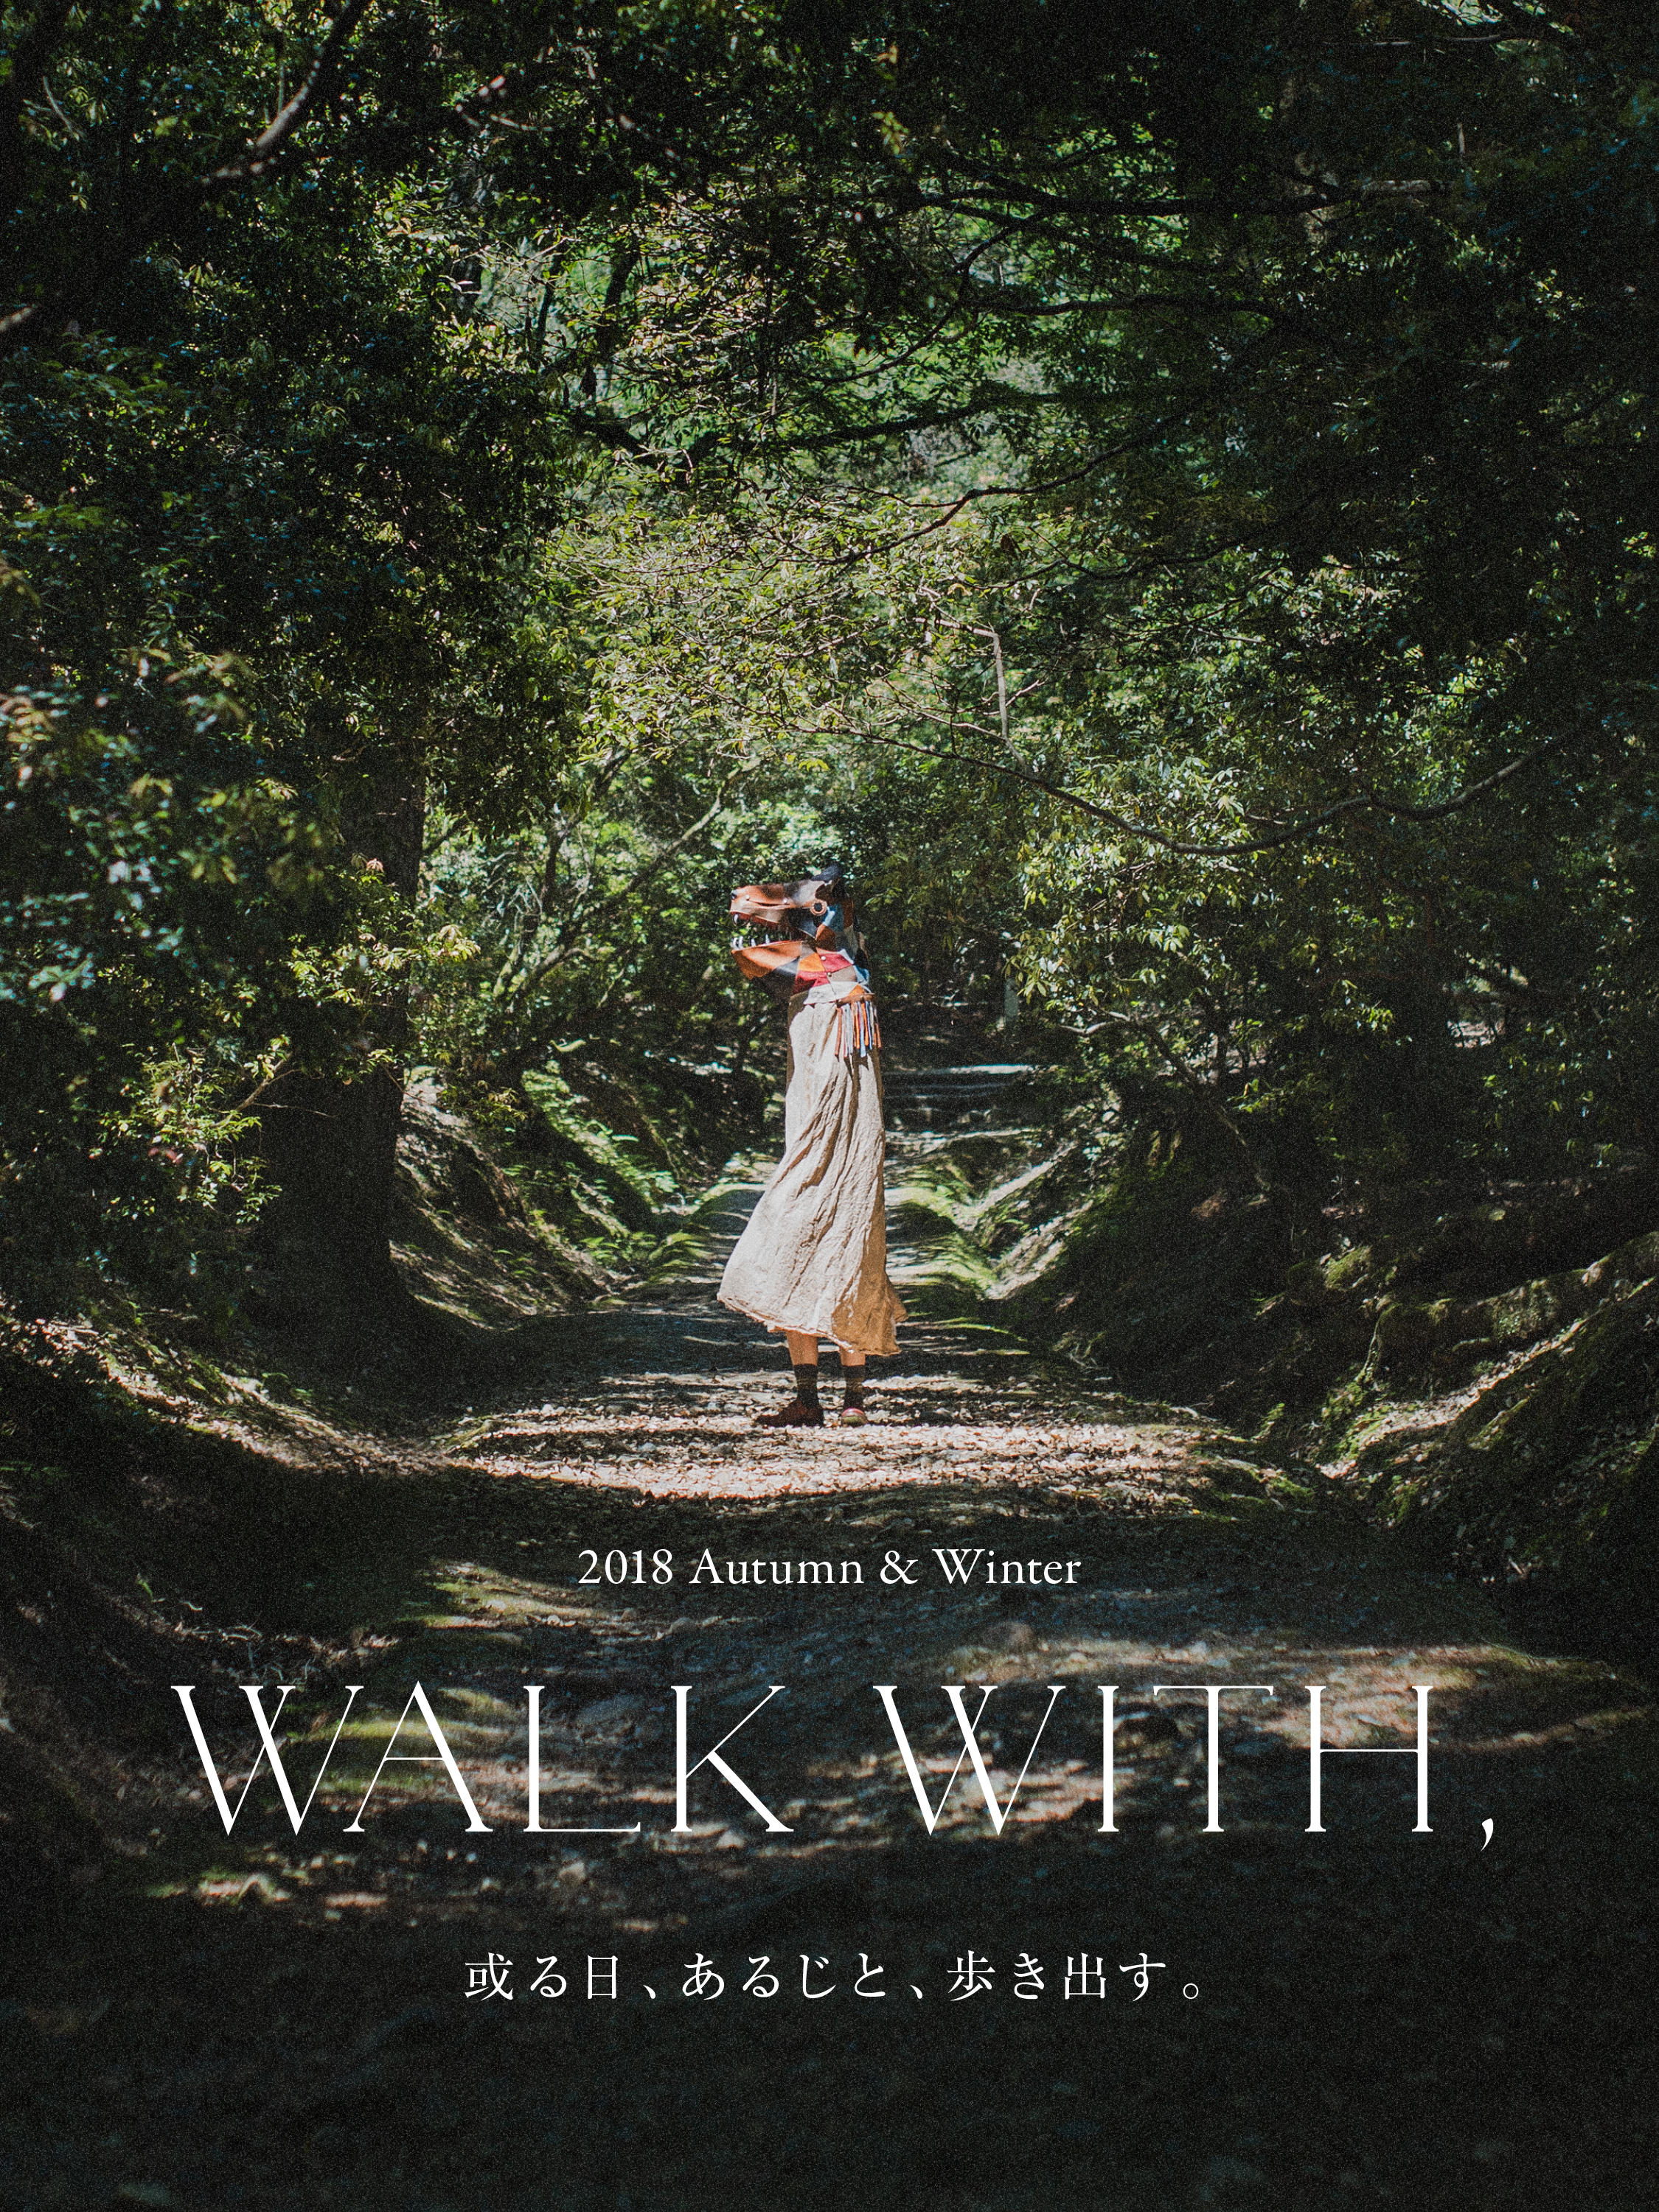 WALK WITH, 2018 Autumn & Winter